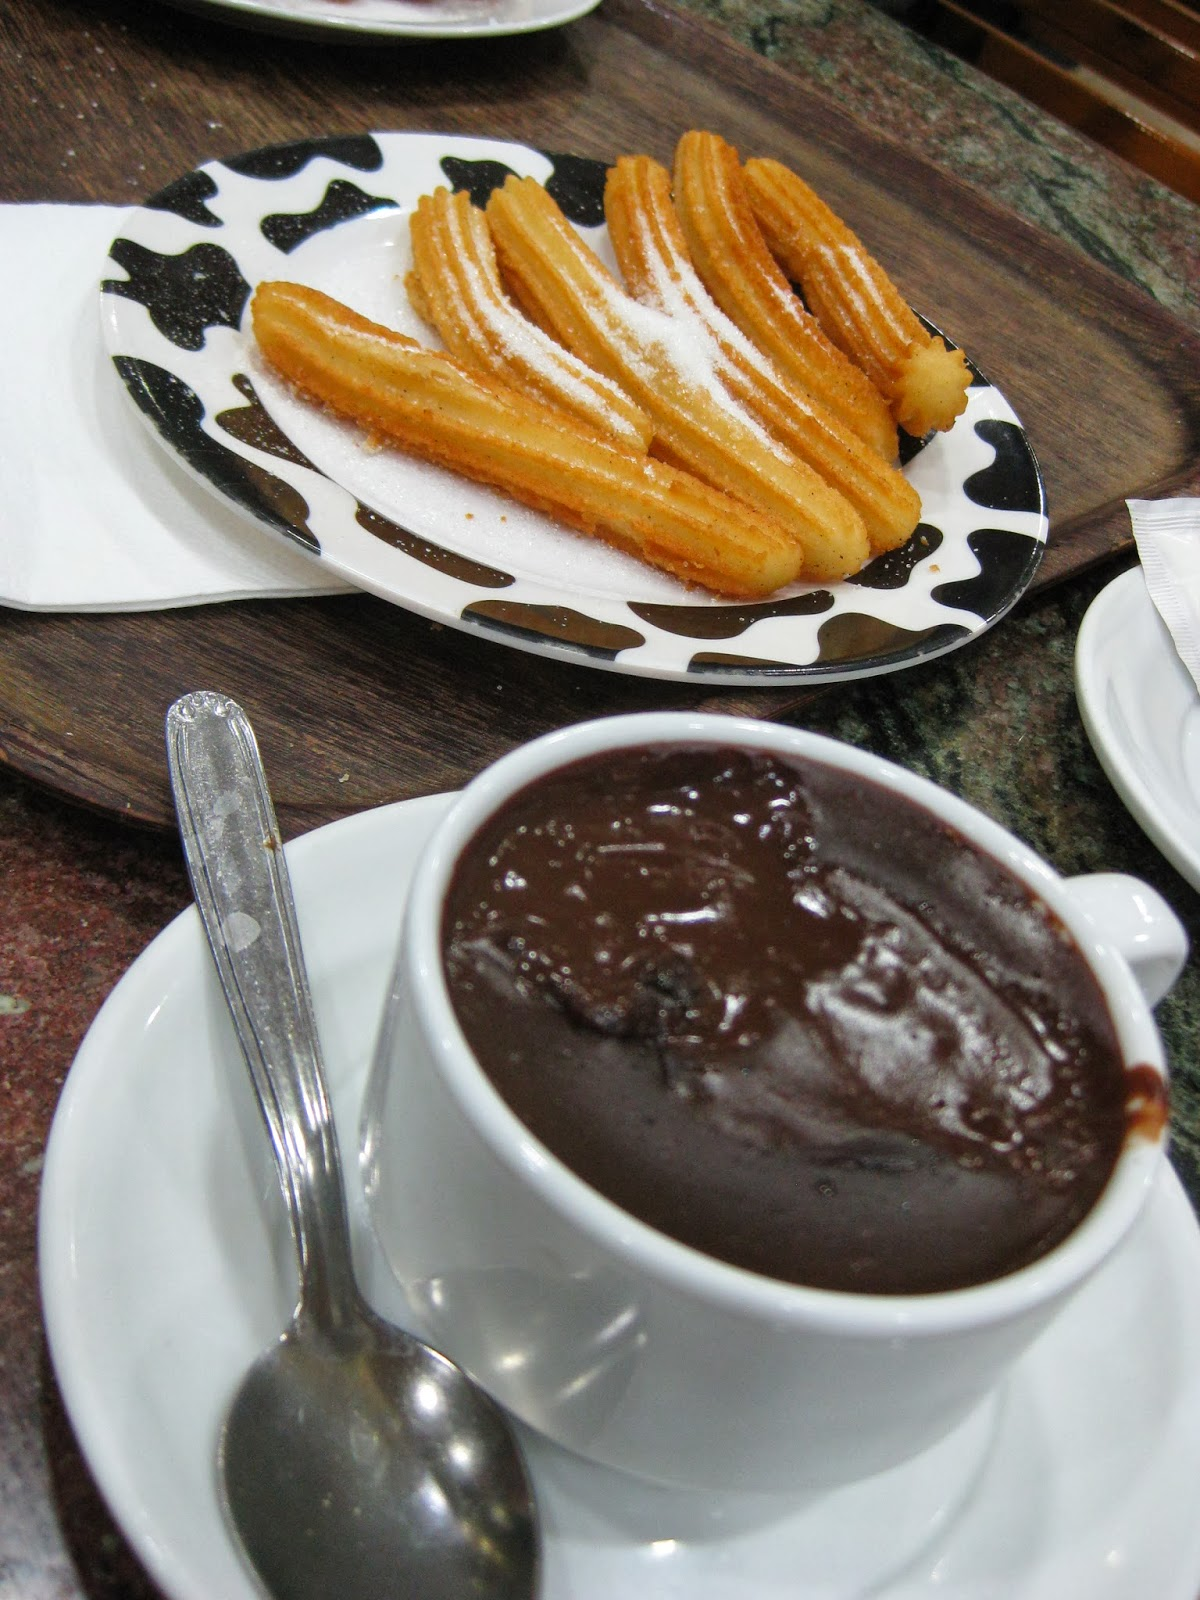 San Sebastian - chocolate con churros at Santa Lucia